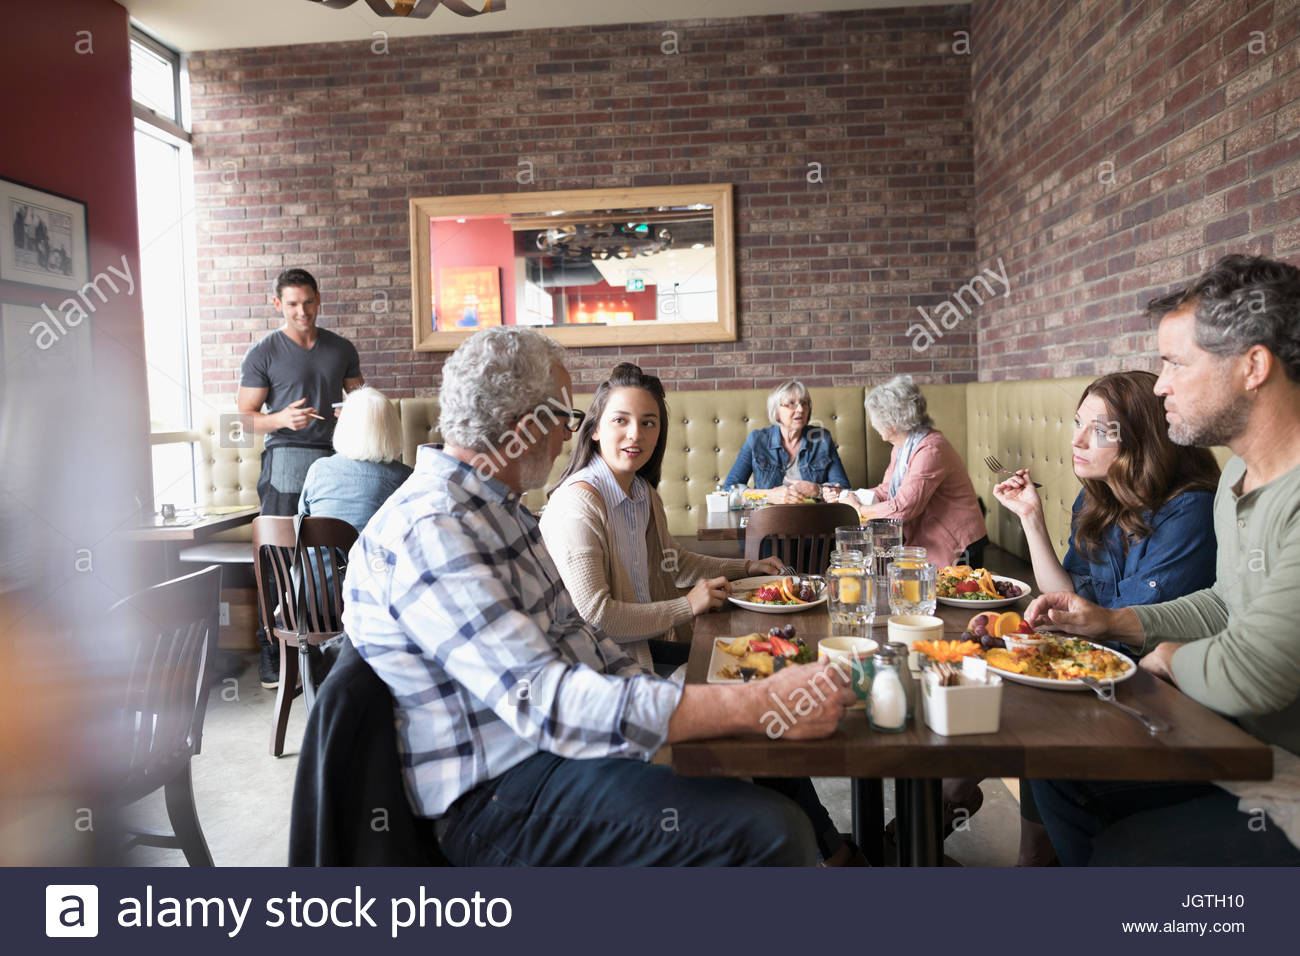 Multi-generation family eating brunch at diner table - Stock Image